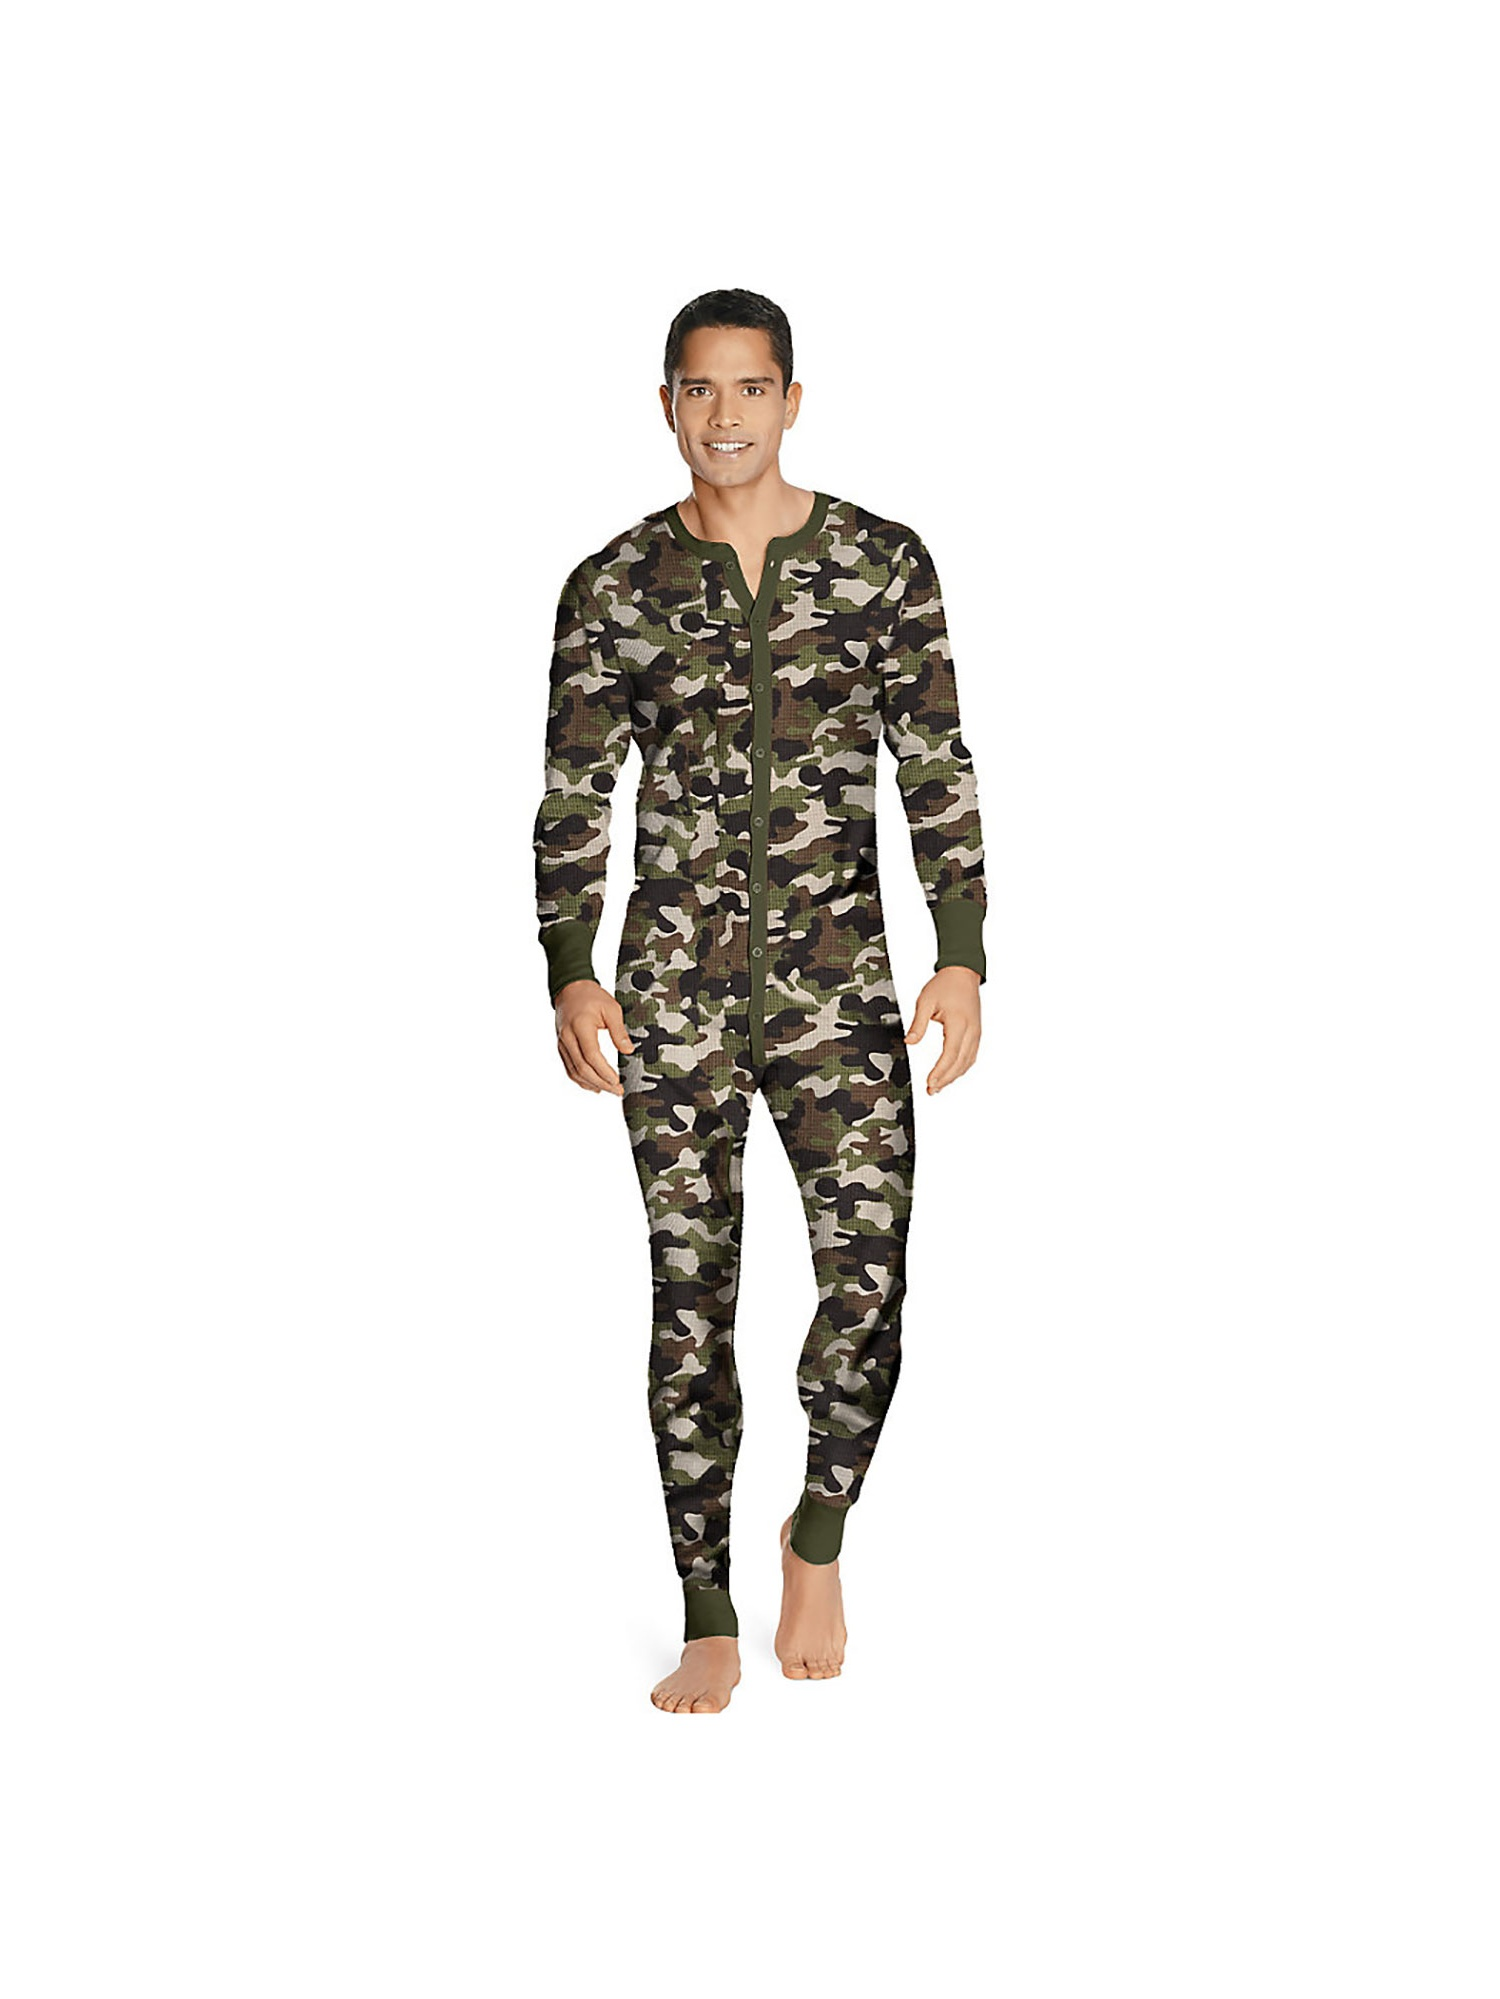 Hanes Men's Full Cut Fit Thermal Union Suit, Style 14630